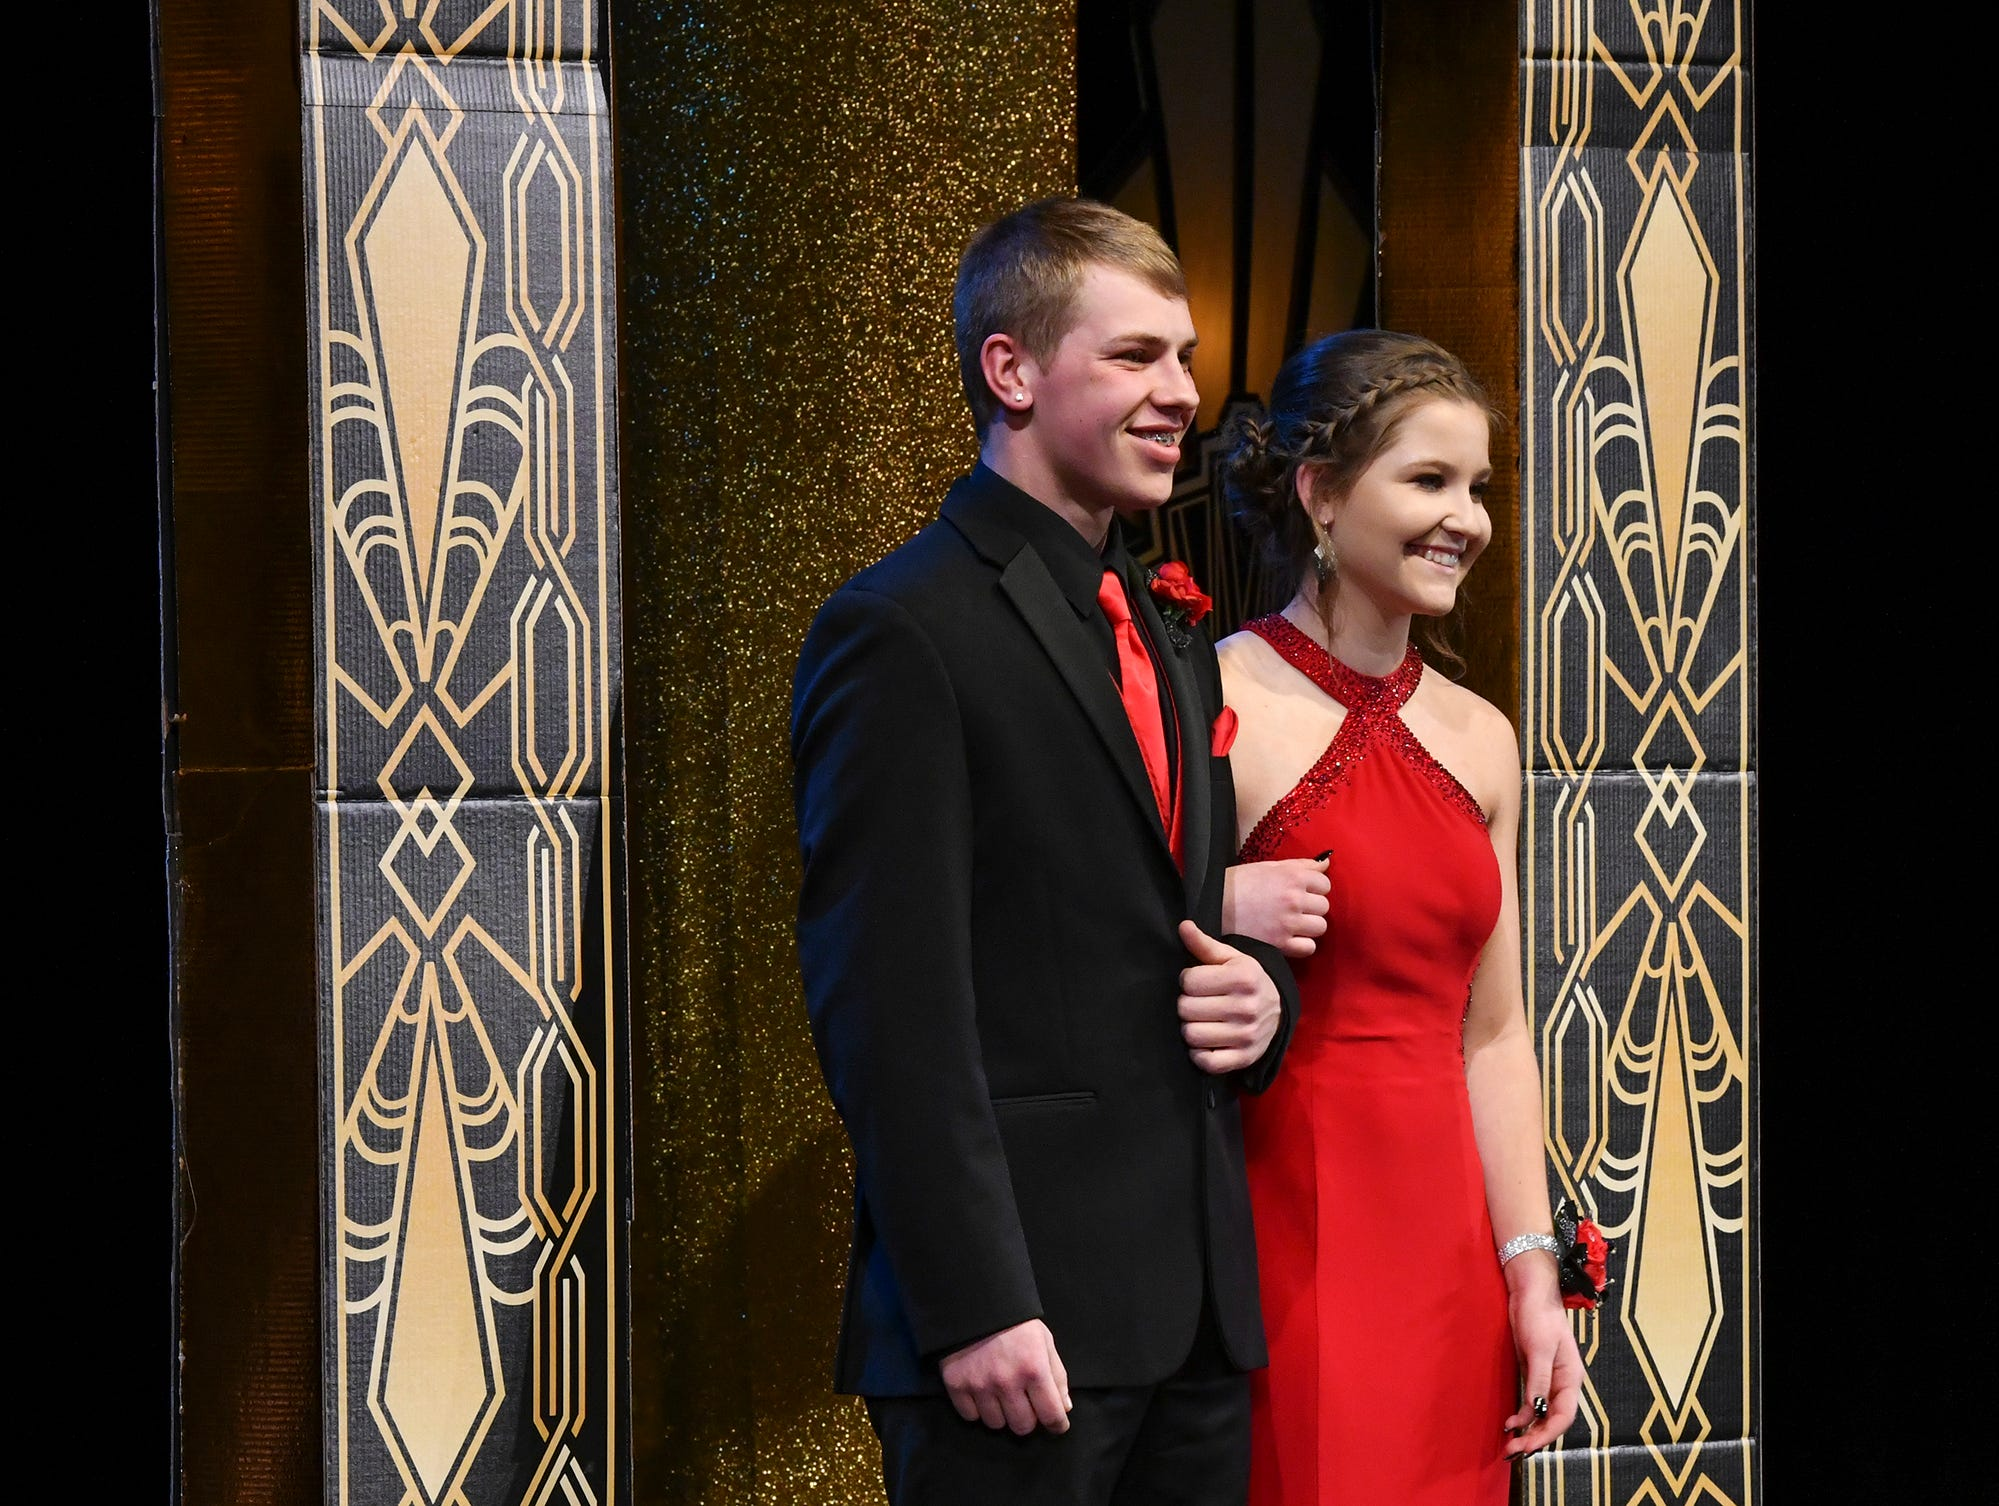 Mya Snyder and Jacob Gilk smile on stage during prom grand march Saturday, April 6, at Albany High School.